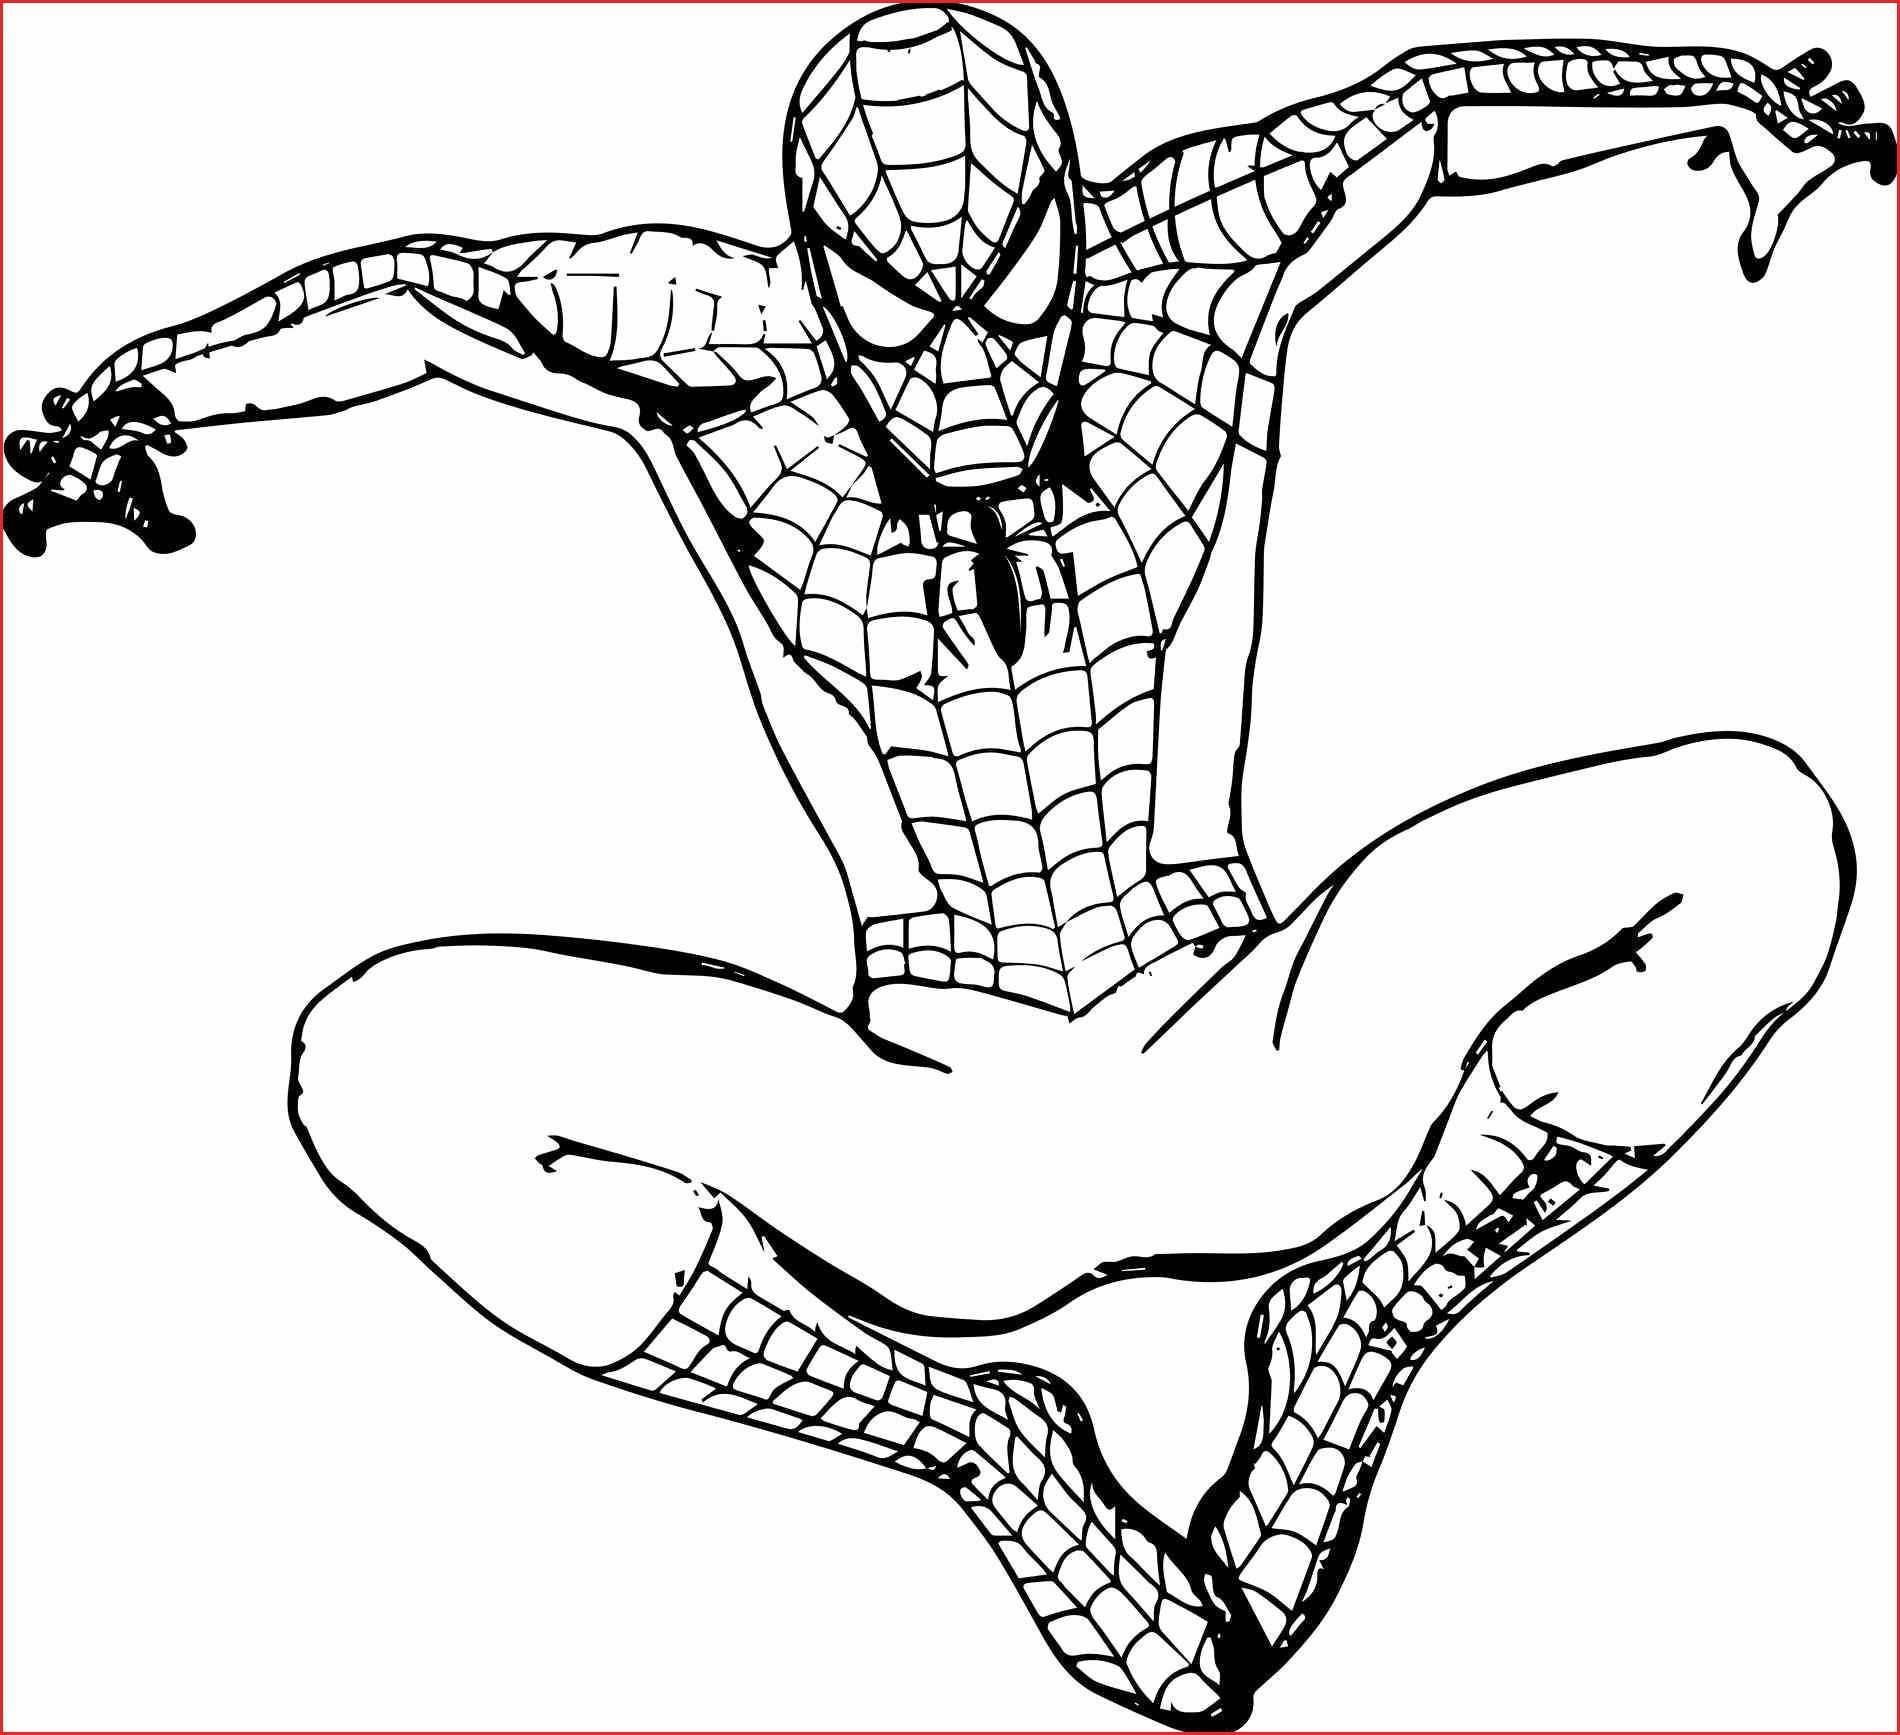 Spiderman Presents Christmas Coloring Page Spiderman Coloring Christmas Coloring Pages Spiderman Christmas